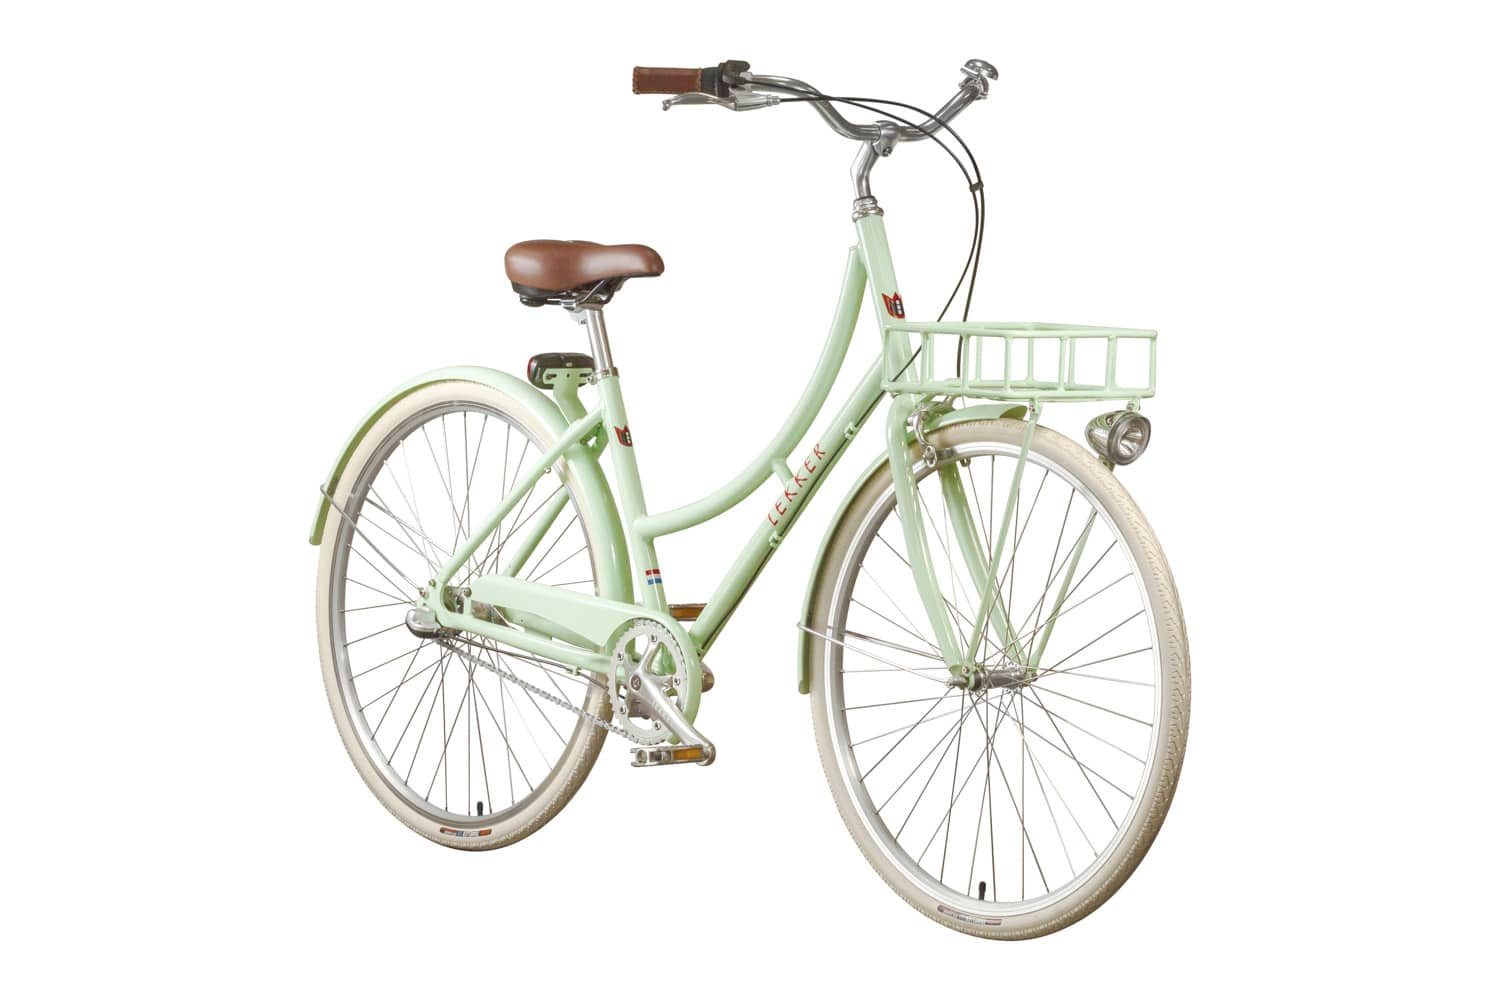 Lekker Sportief Pastel Green Premium Dutch Bike Retro Vintage Bike